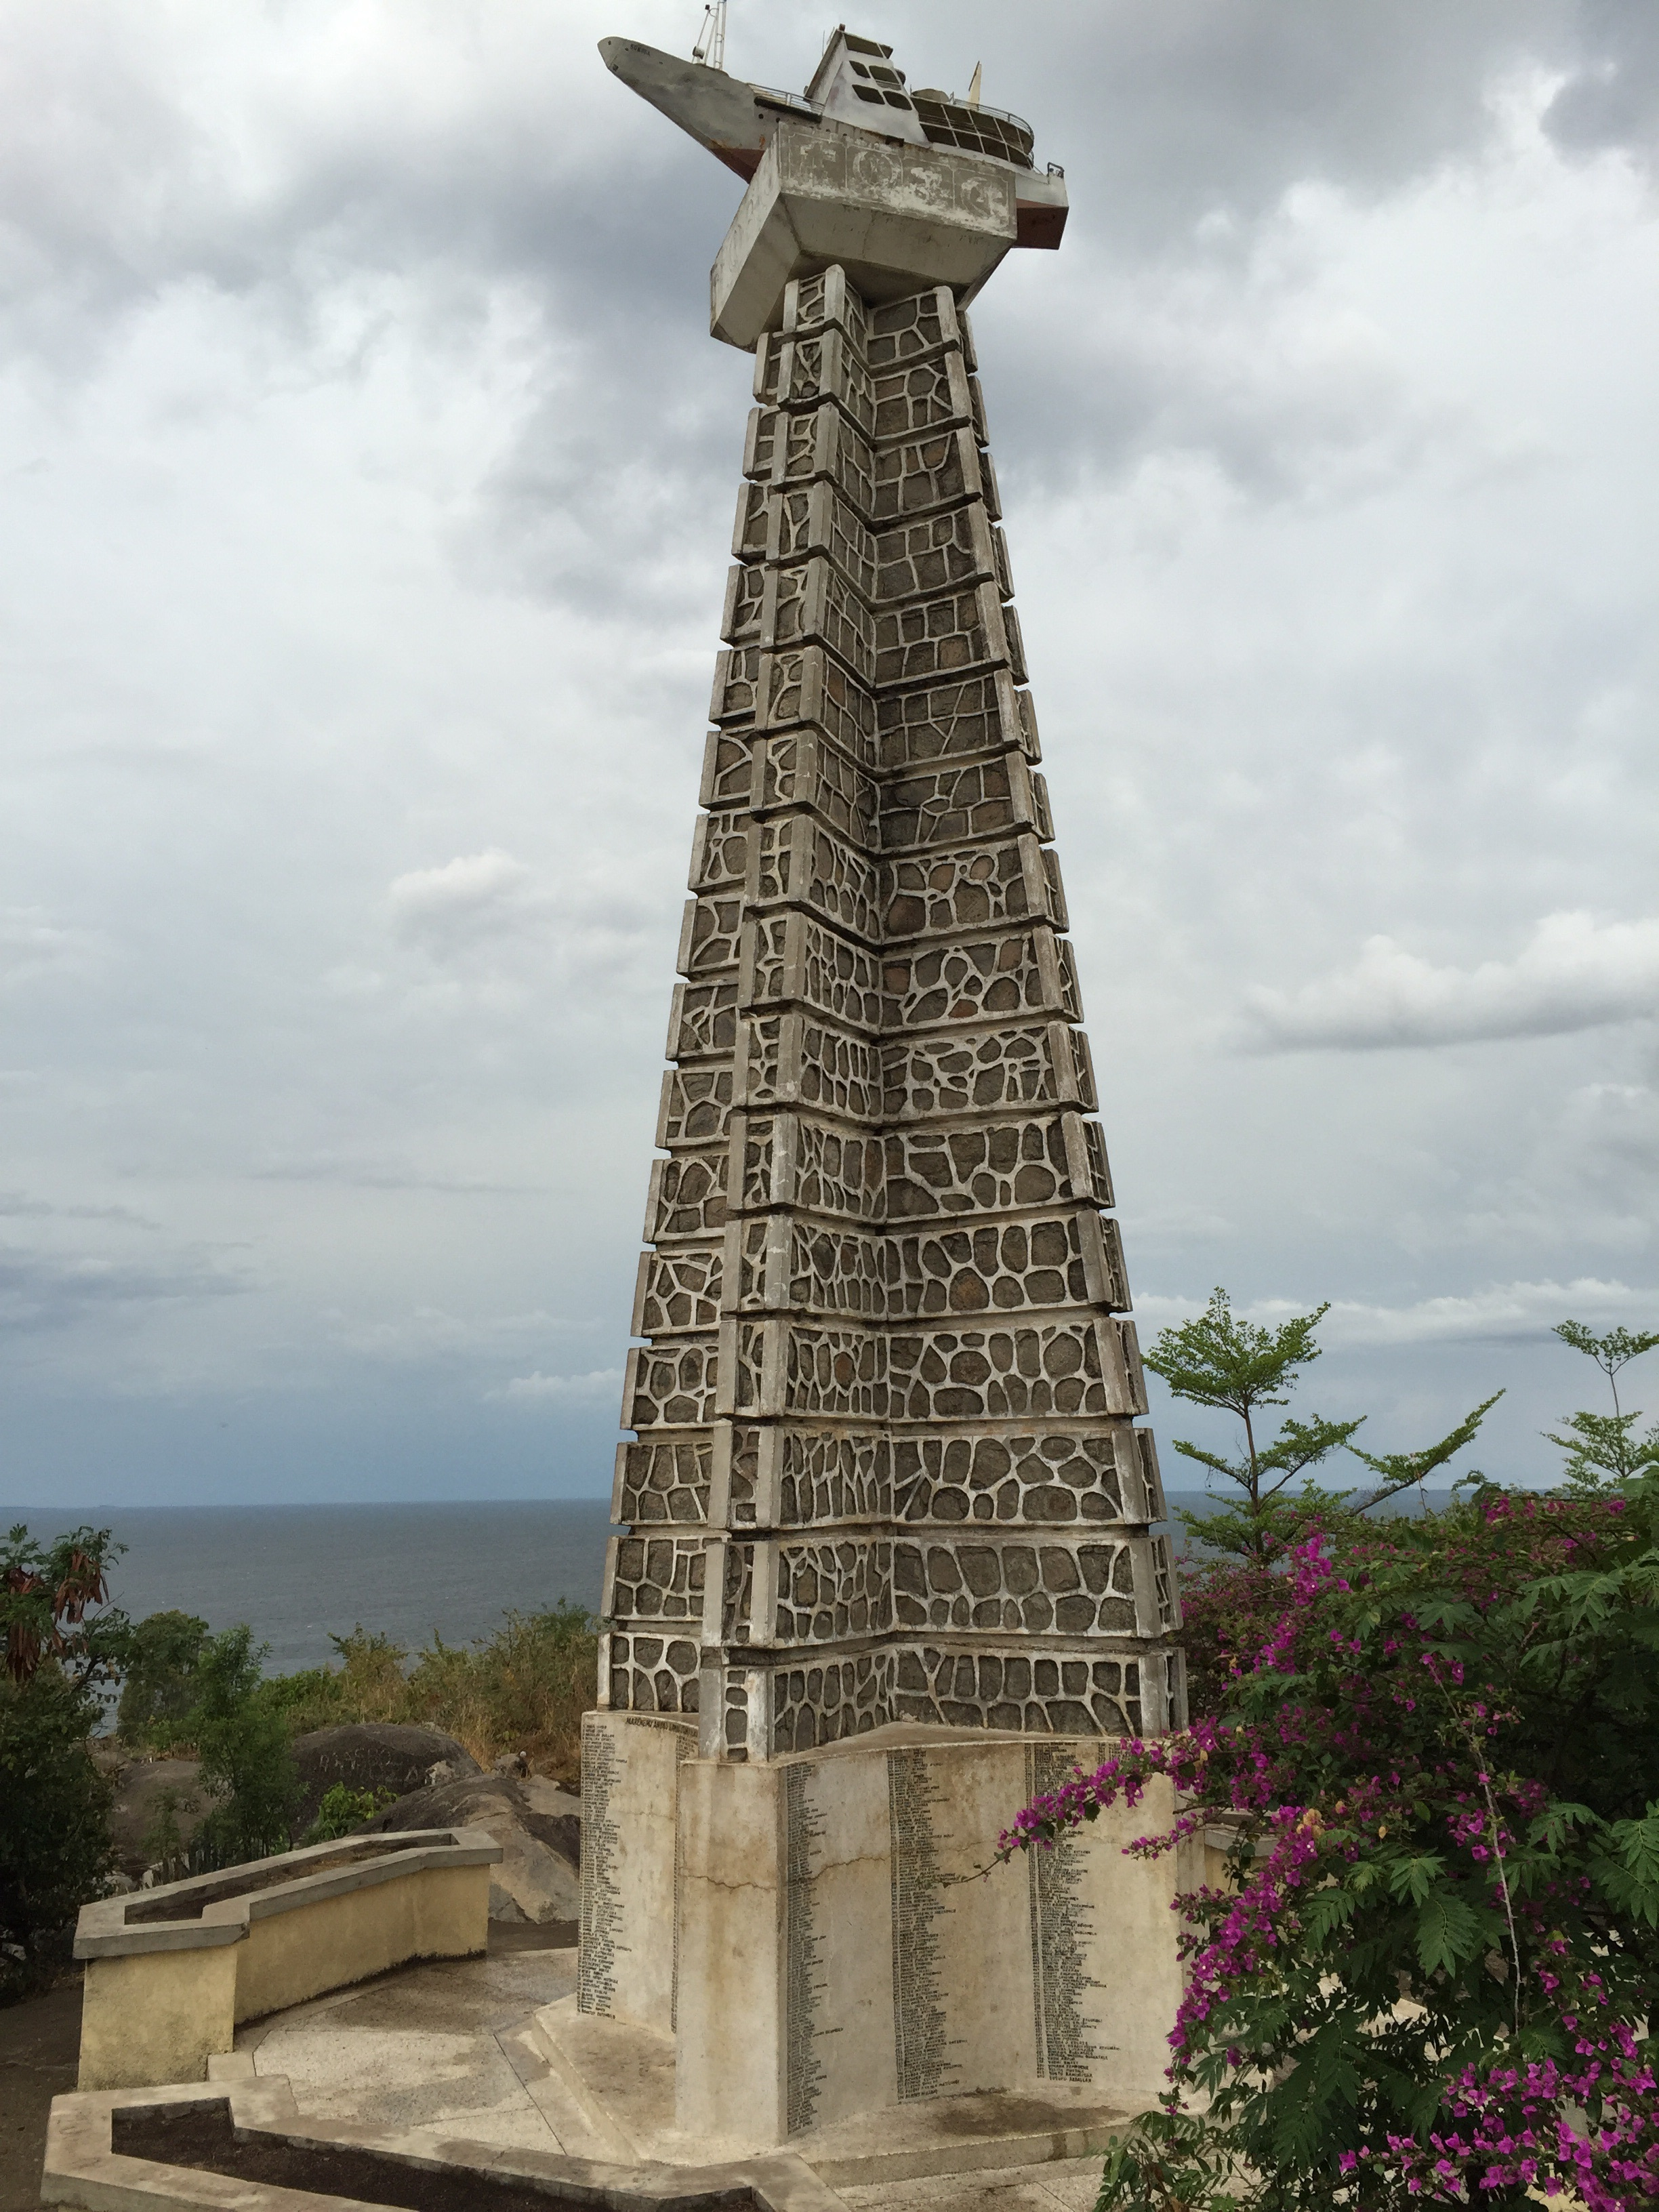 A monument to MV Bukoba. A lake Victoria ferry that carried passengers between ports of Bukoba and Mwanza. It capsized in 1996 killing over 1,000 passengers.